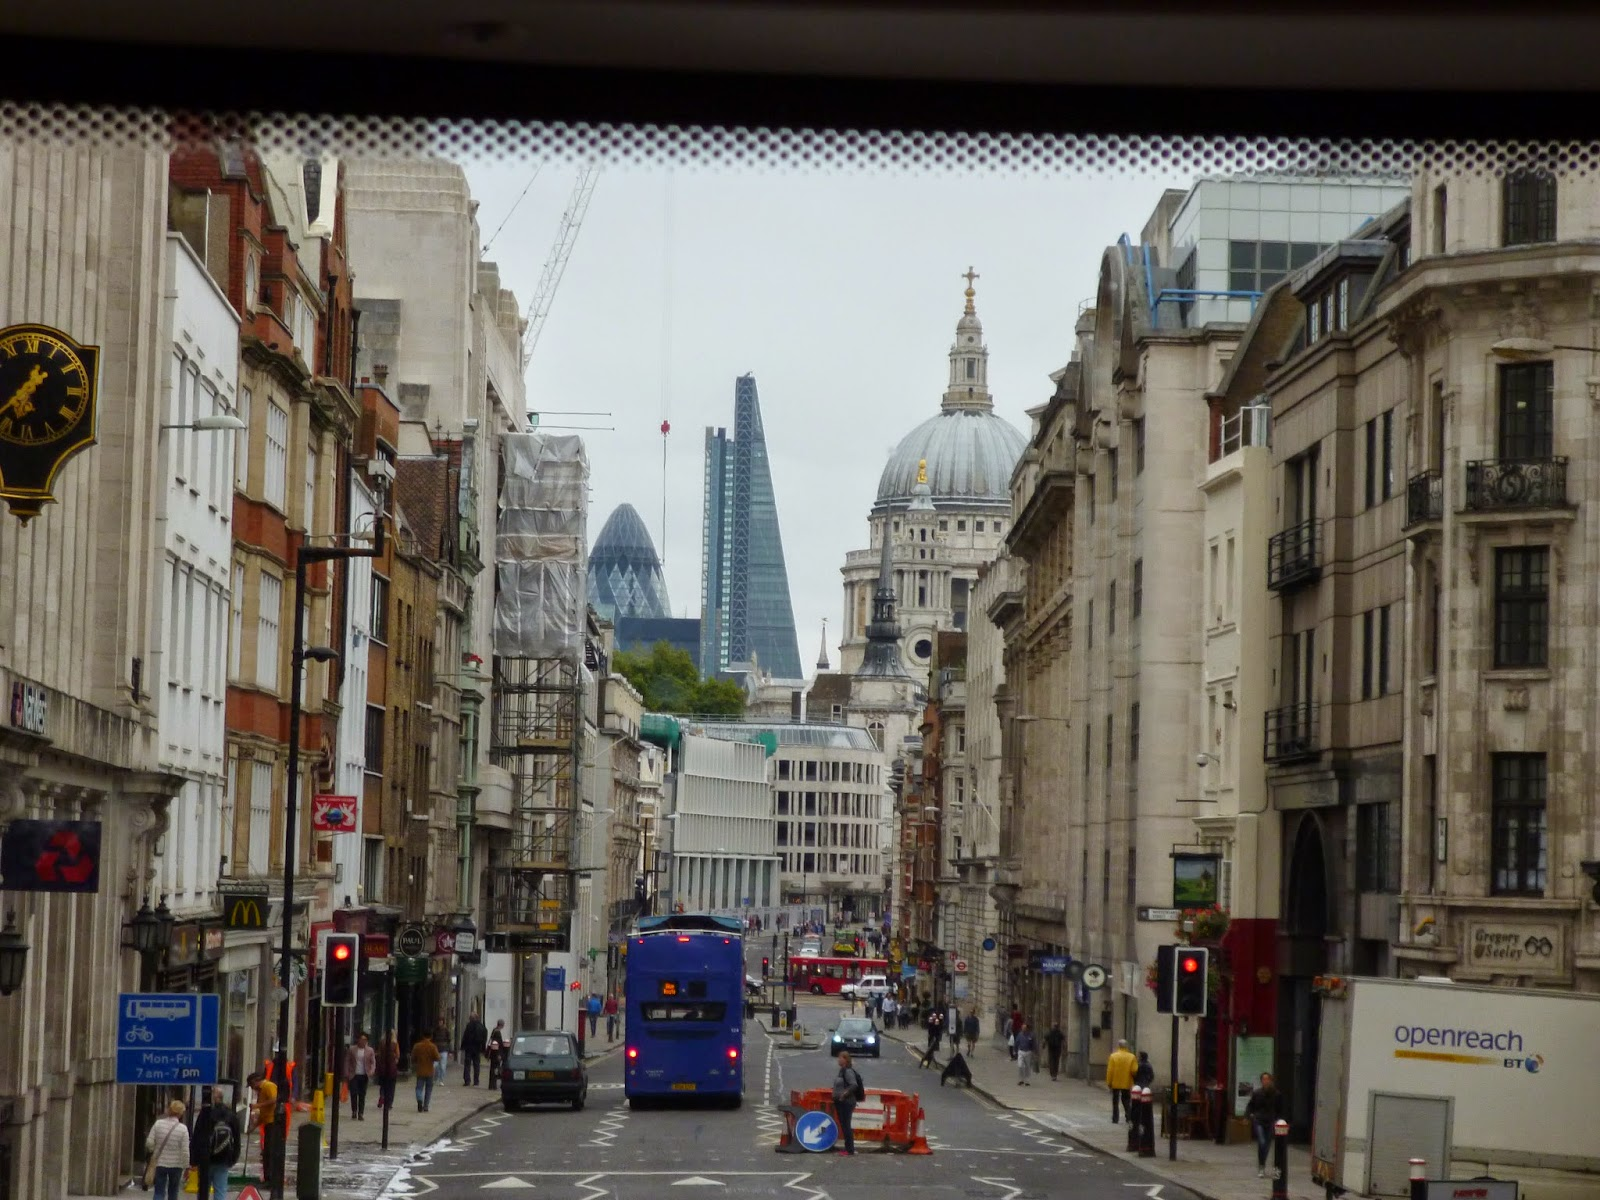 London rocks tourist london part 3 sunday - Stansted express ticket office liverpool street ...